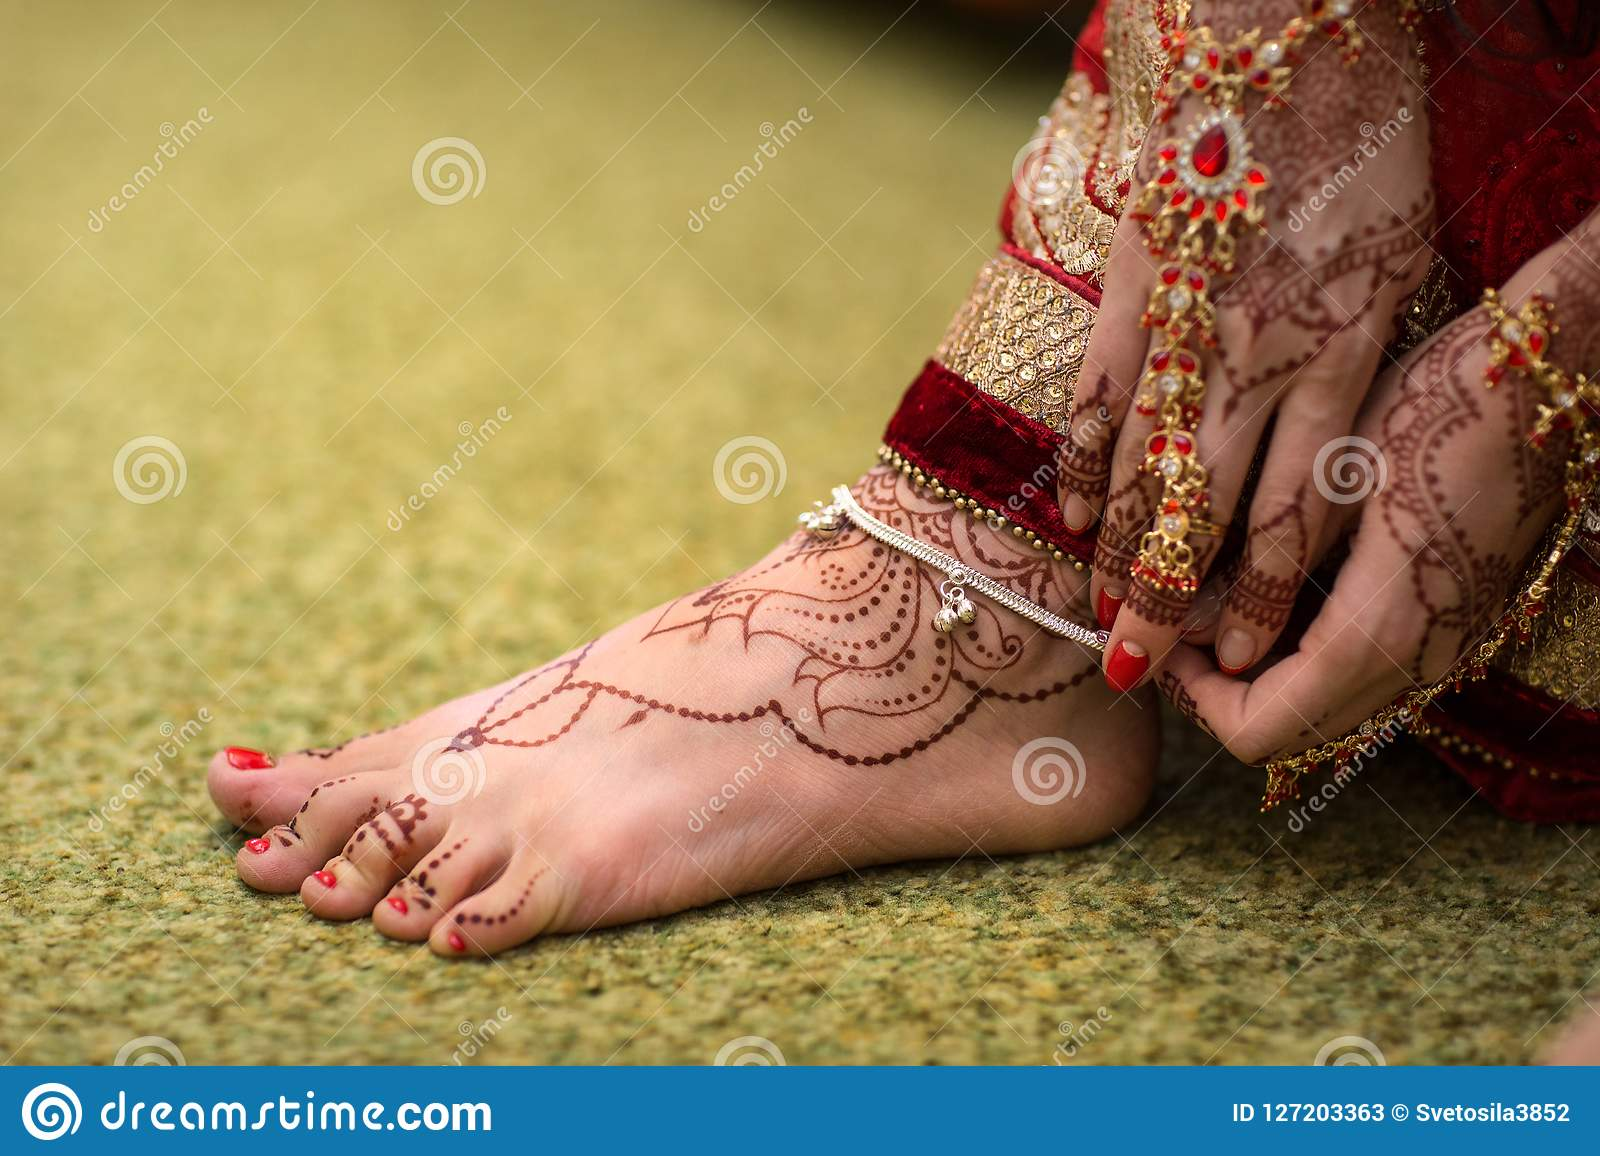 Indian Mehndi Painting On The Foot Feet Girls Stock Image